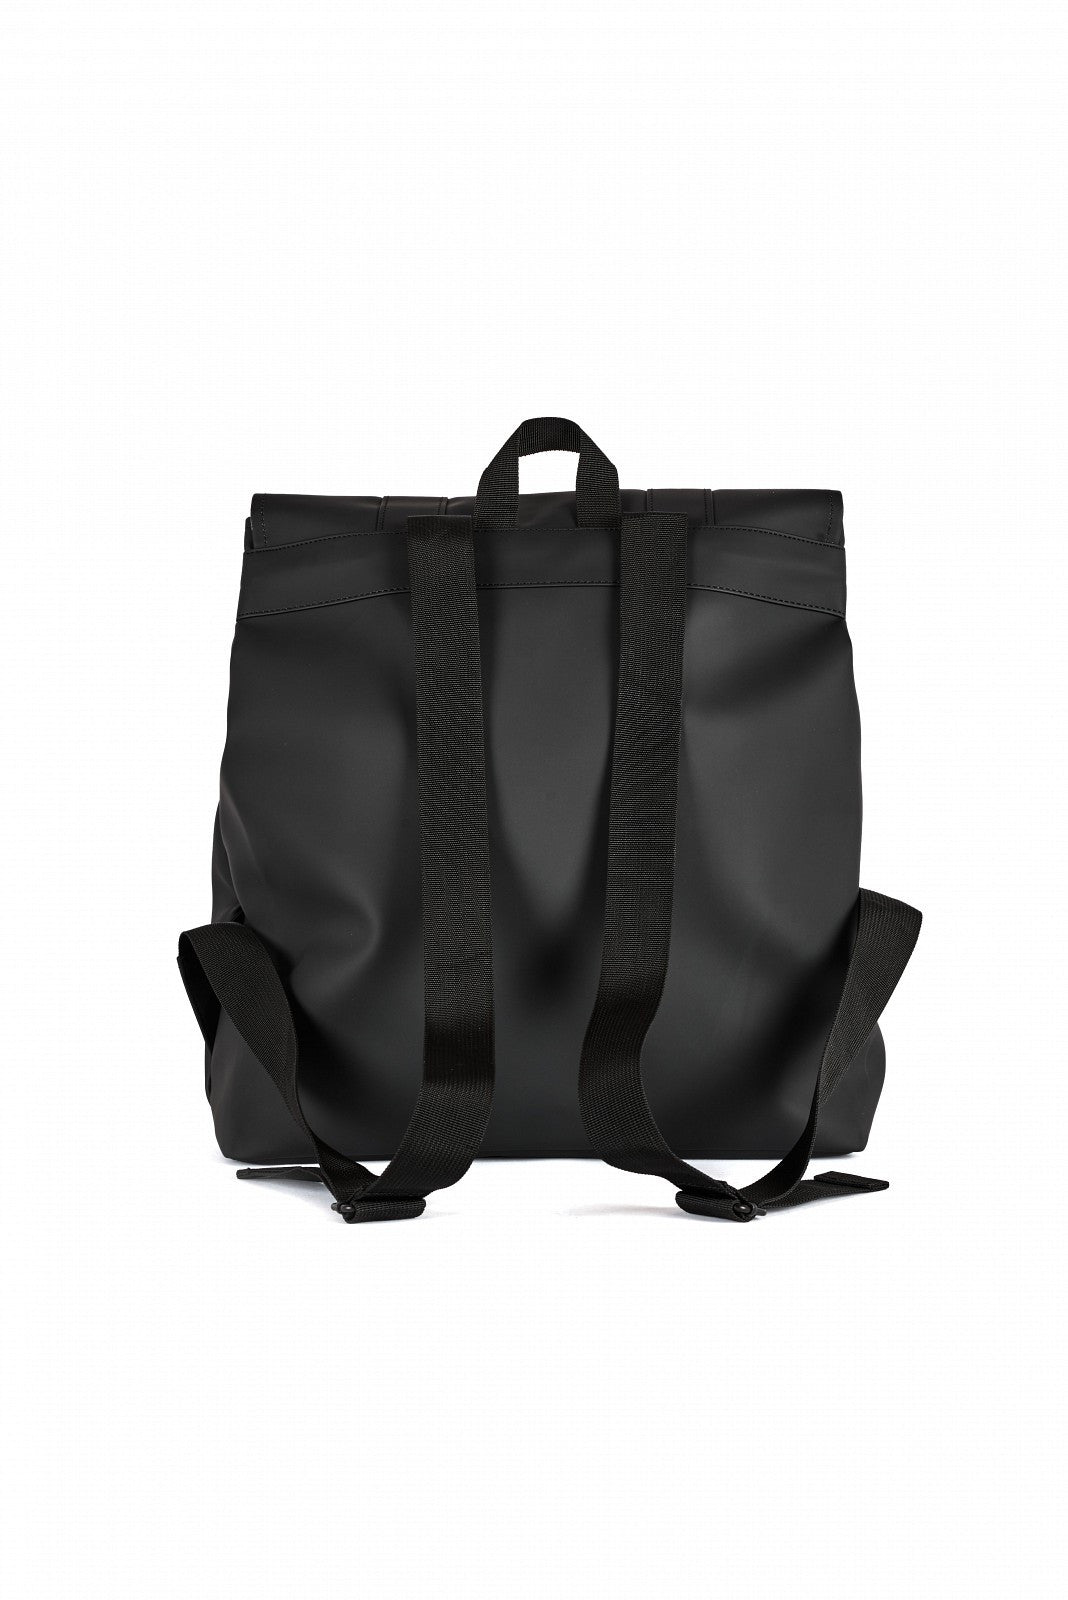 MSN Bag - Black